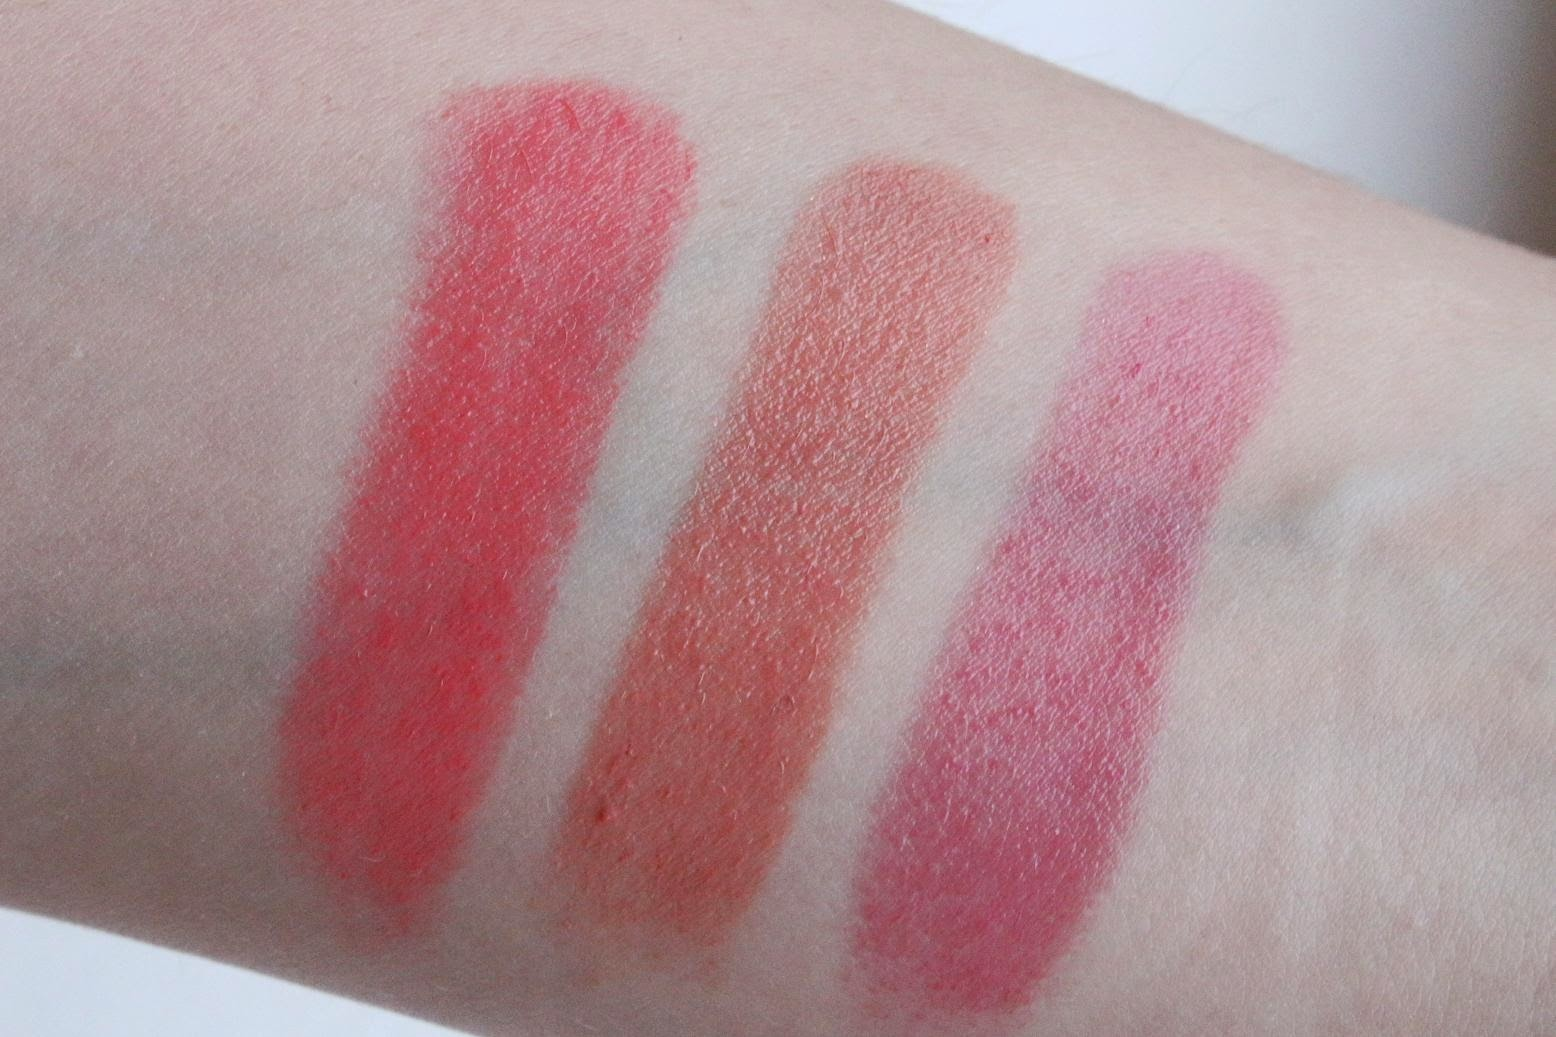 Estée Lauder Pure Color Envy Shine Lipsticks 130 Innocent 320 Surreal Sun 430 Pink Dragon